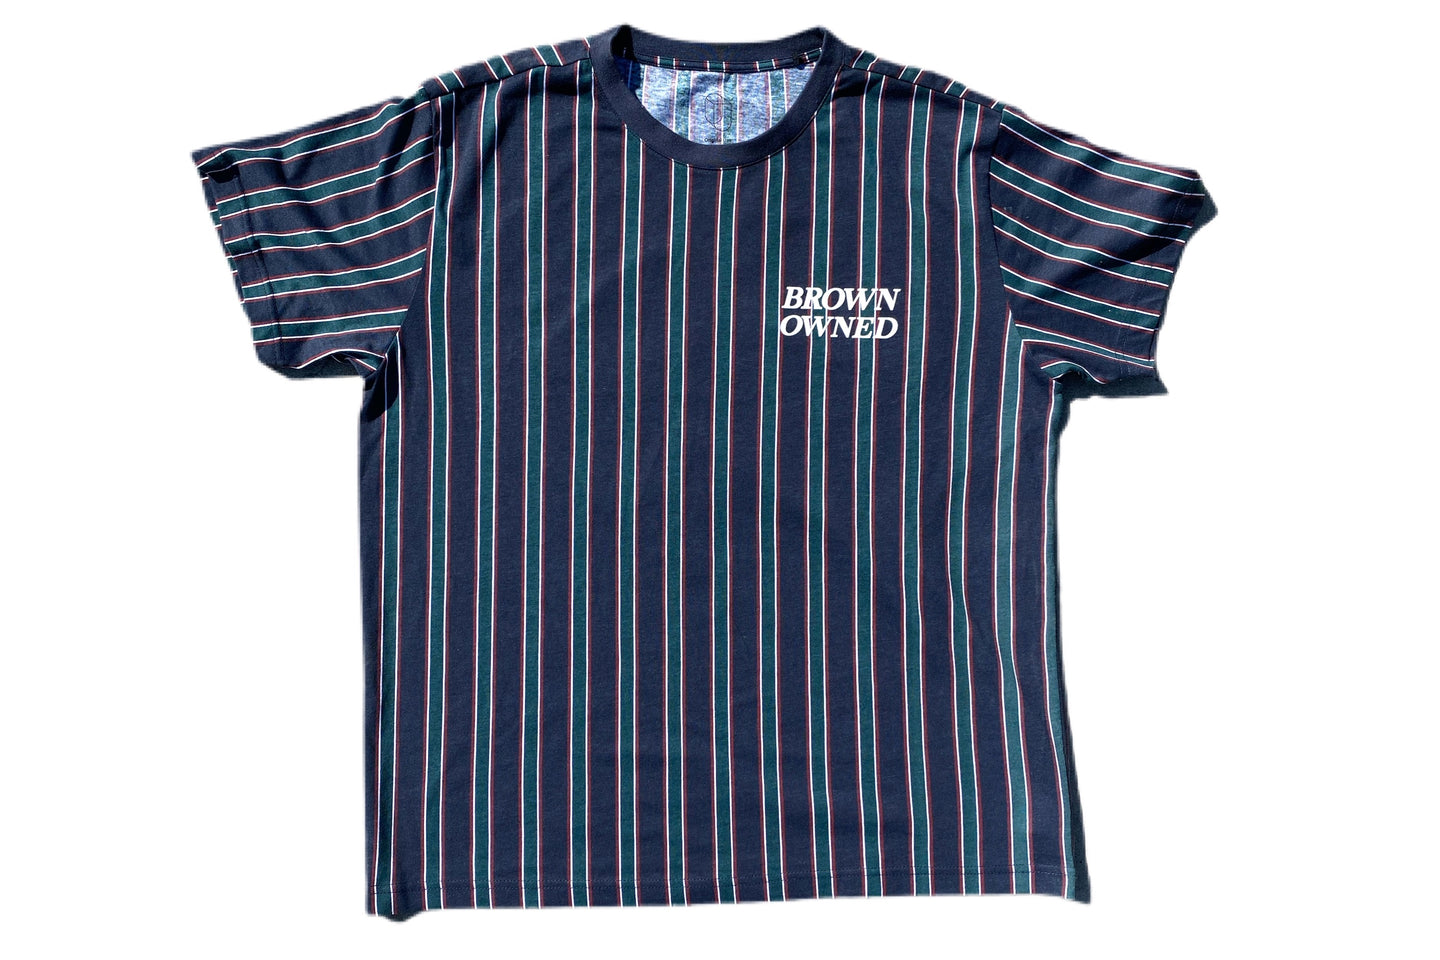 Brown-Owned Striped Limited Edition Shirt